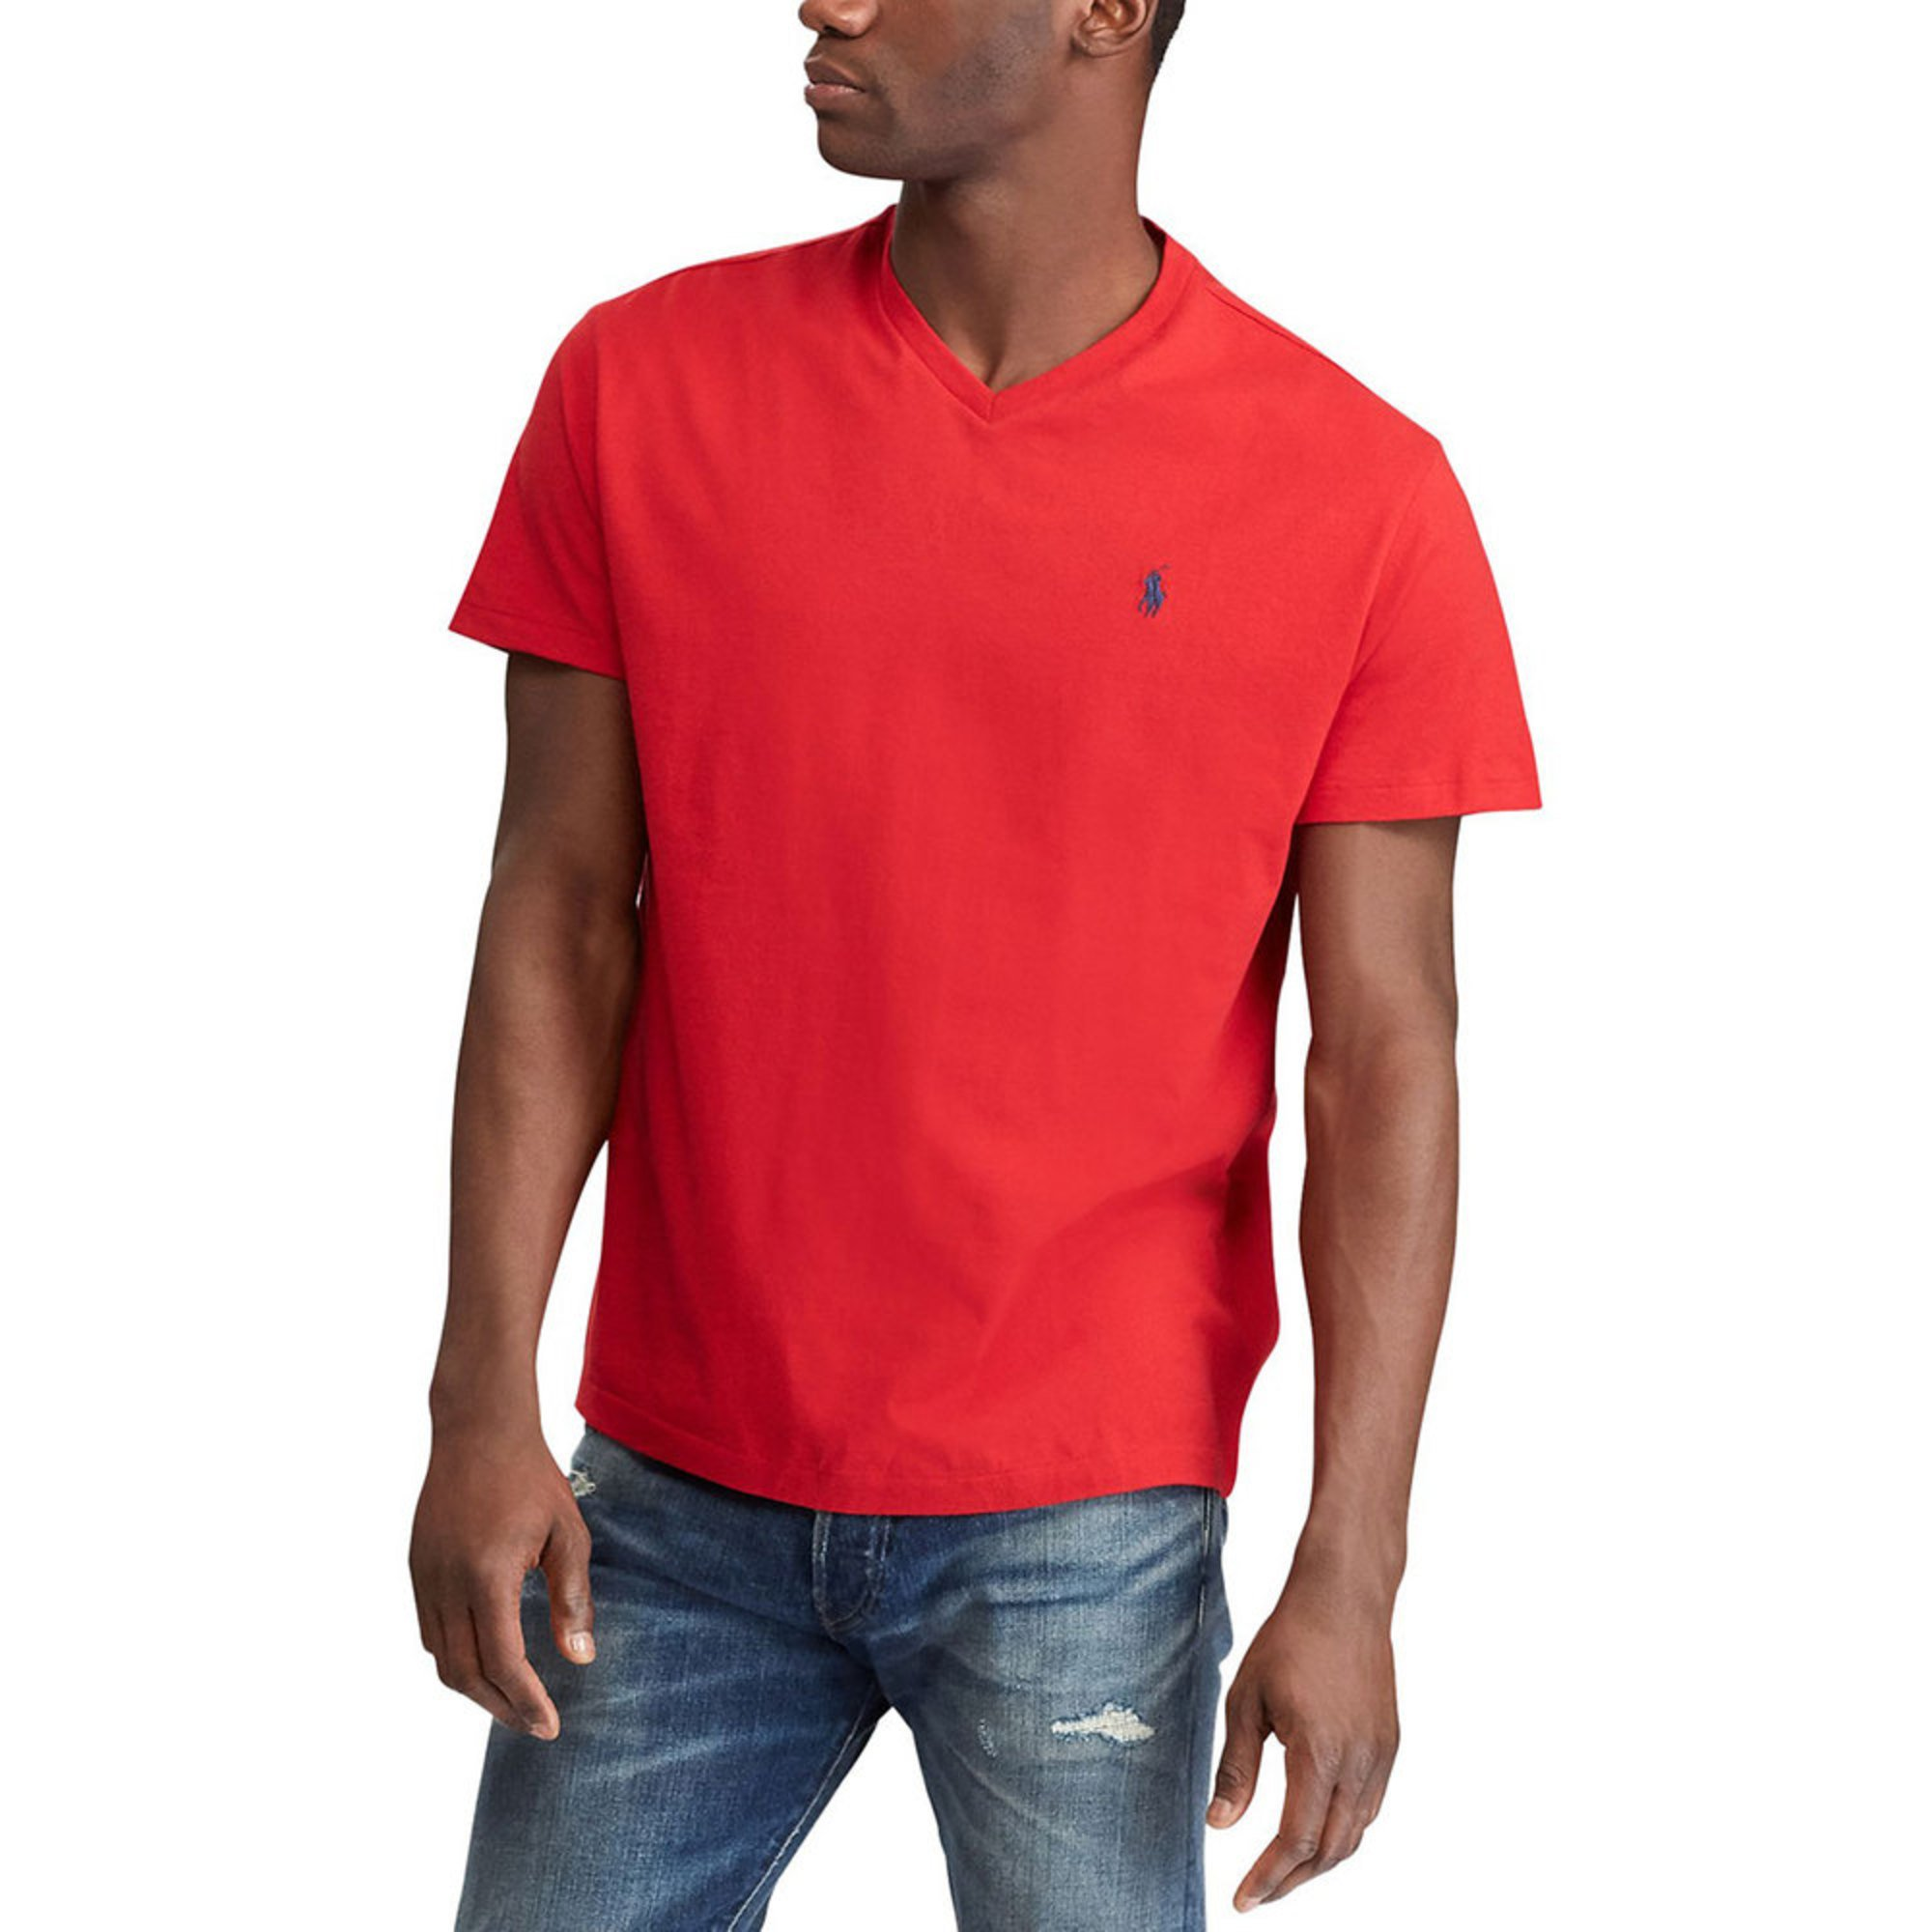 639548605 Polo Ralph Lauren Short Sleeve V-neck Tee In Red | Casual & Dress ...